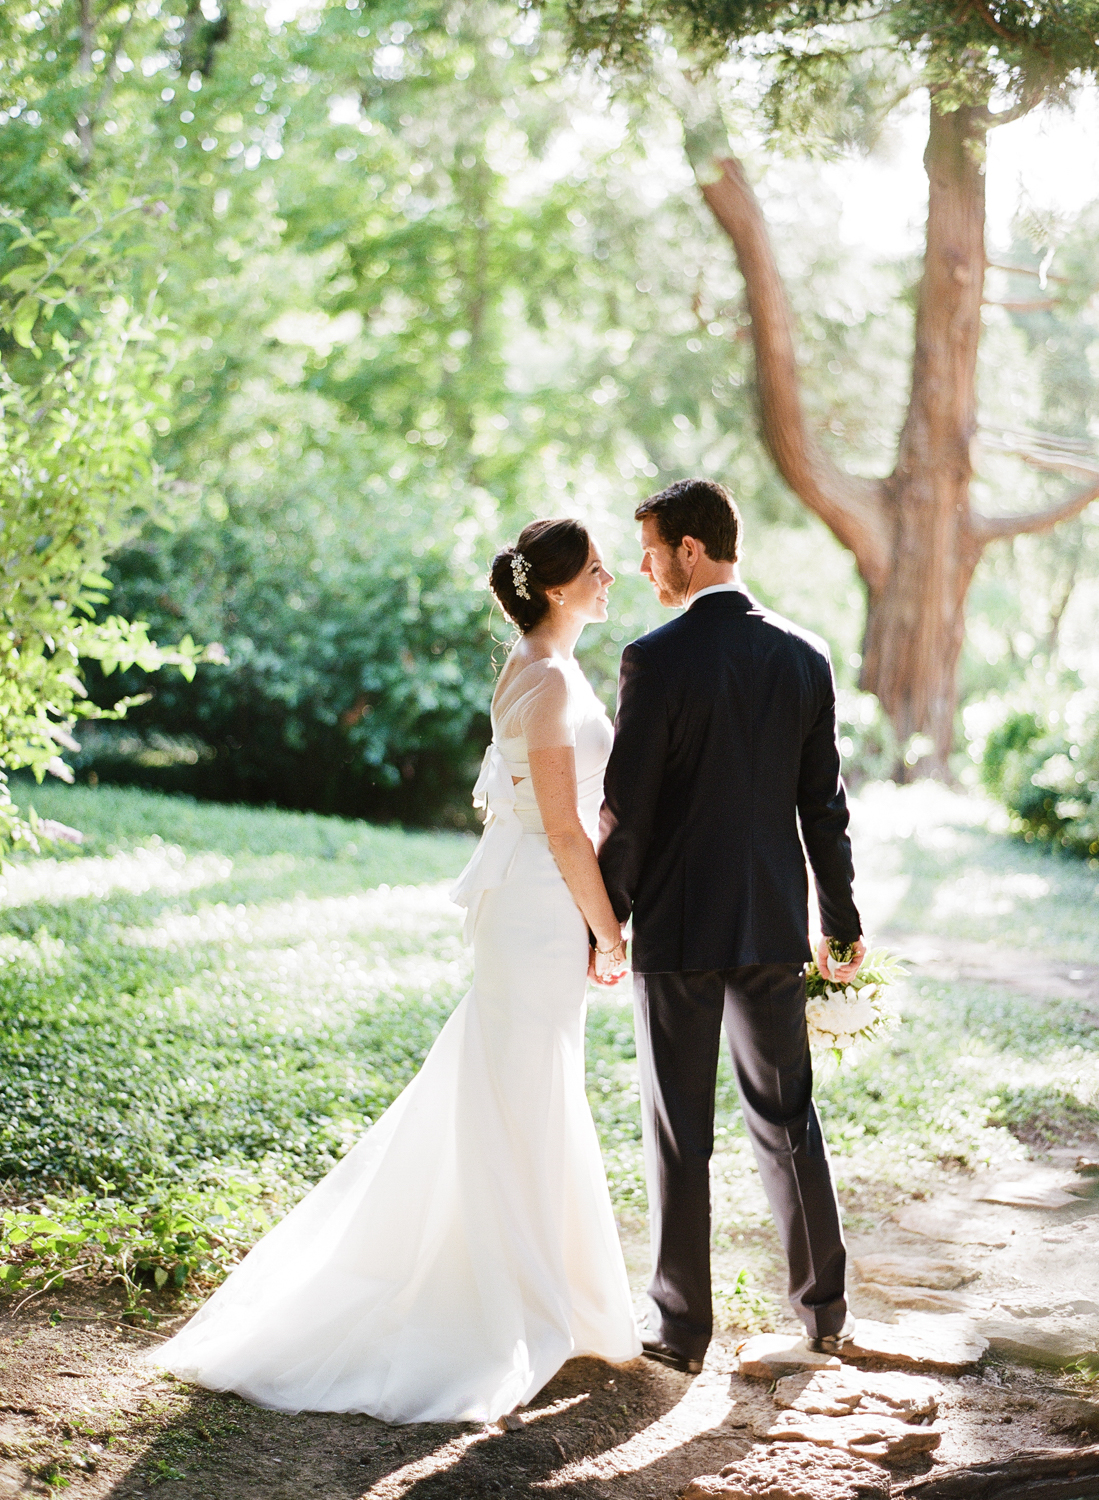 The bride and groom share a moment just married; Sylvie Gil Photography